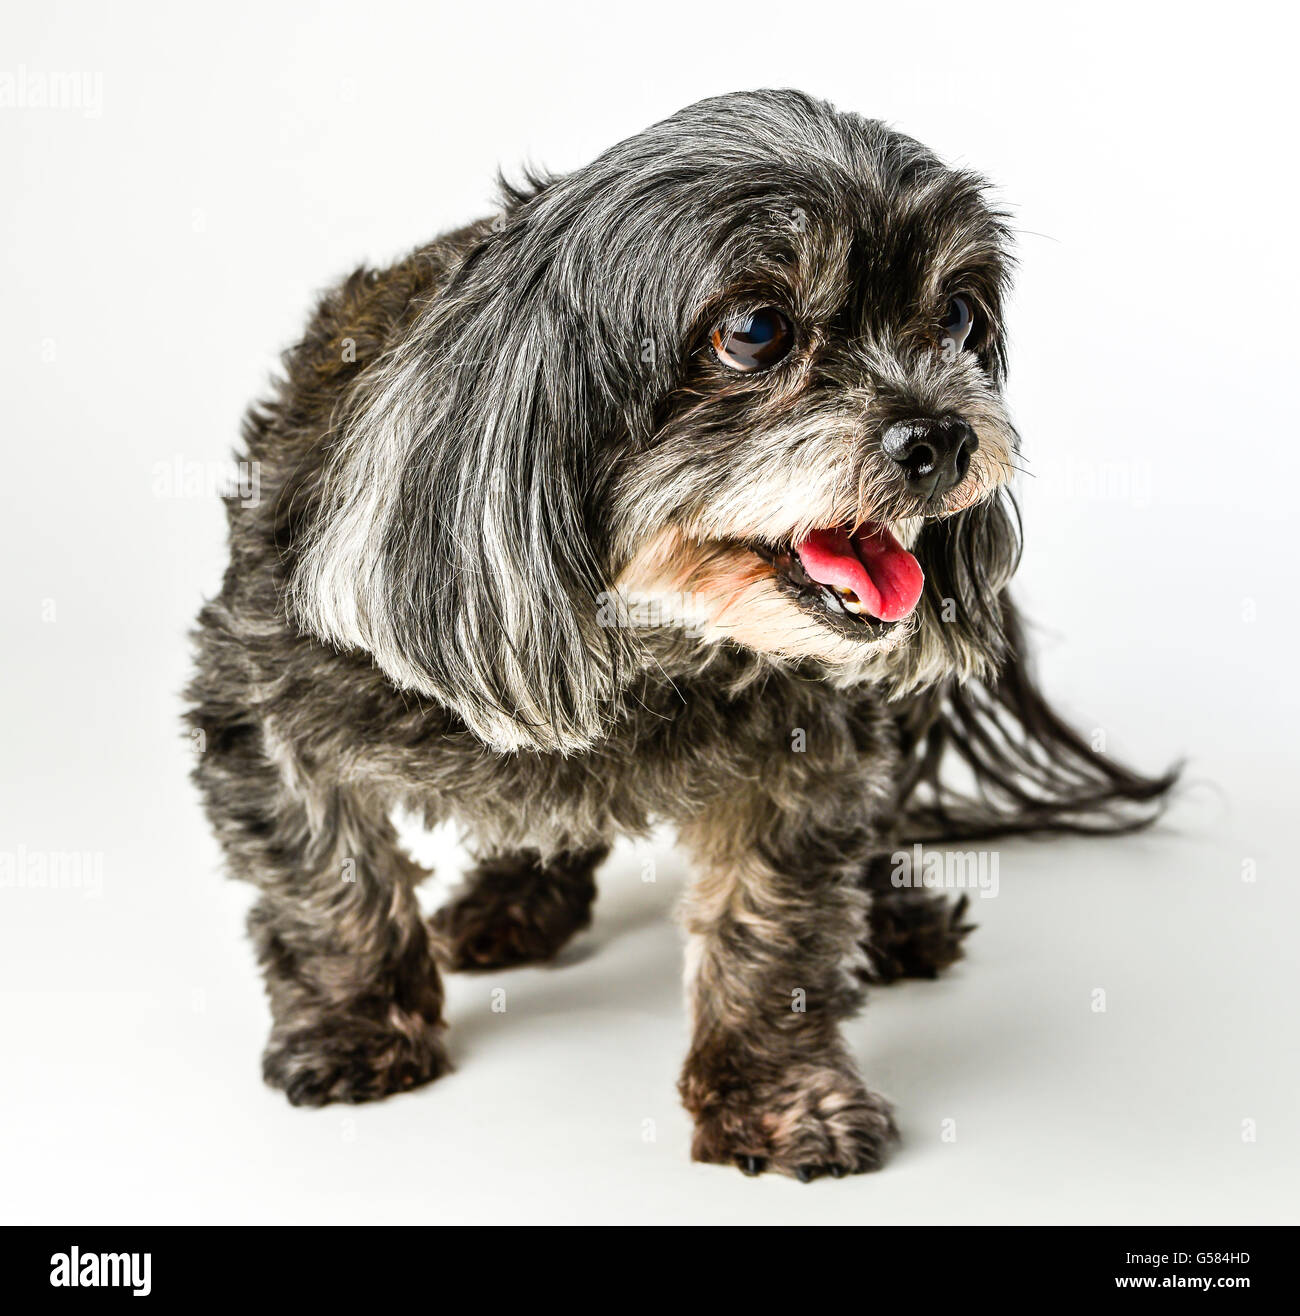 An adorable dark tri-colored mixed breed small dog with tongue out posing and smiling while walking on white background - Stock Image